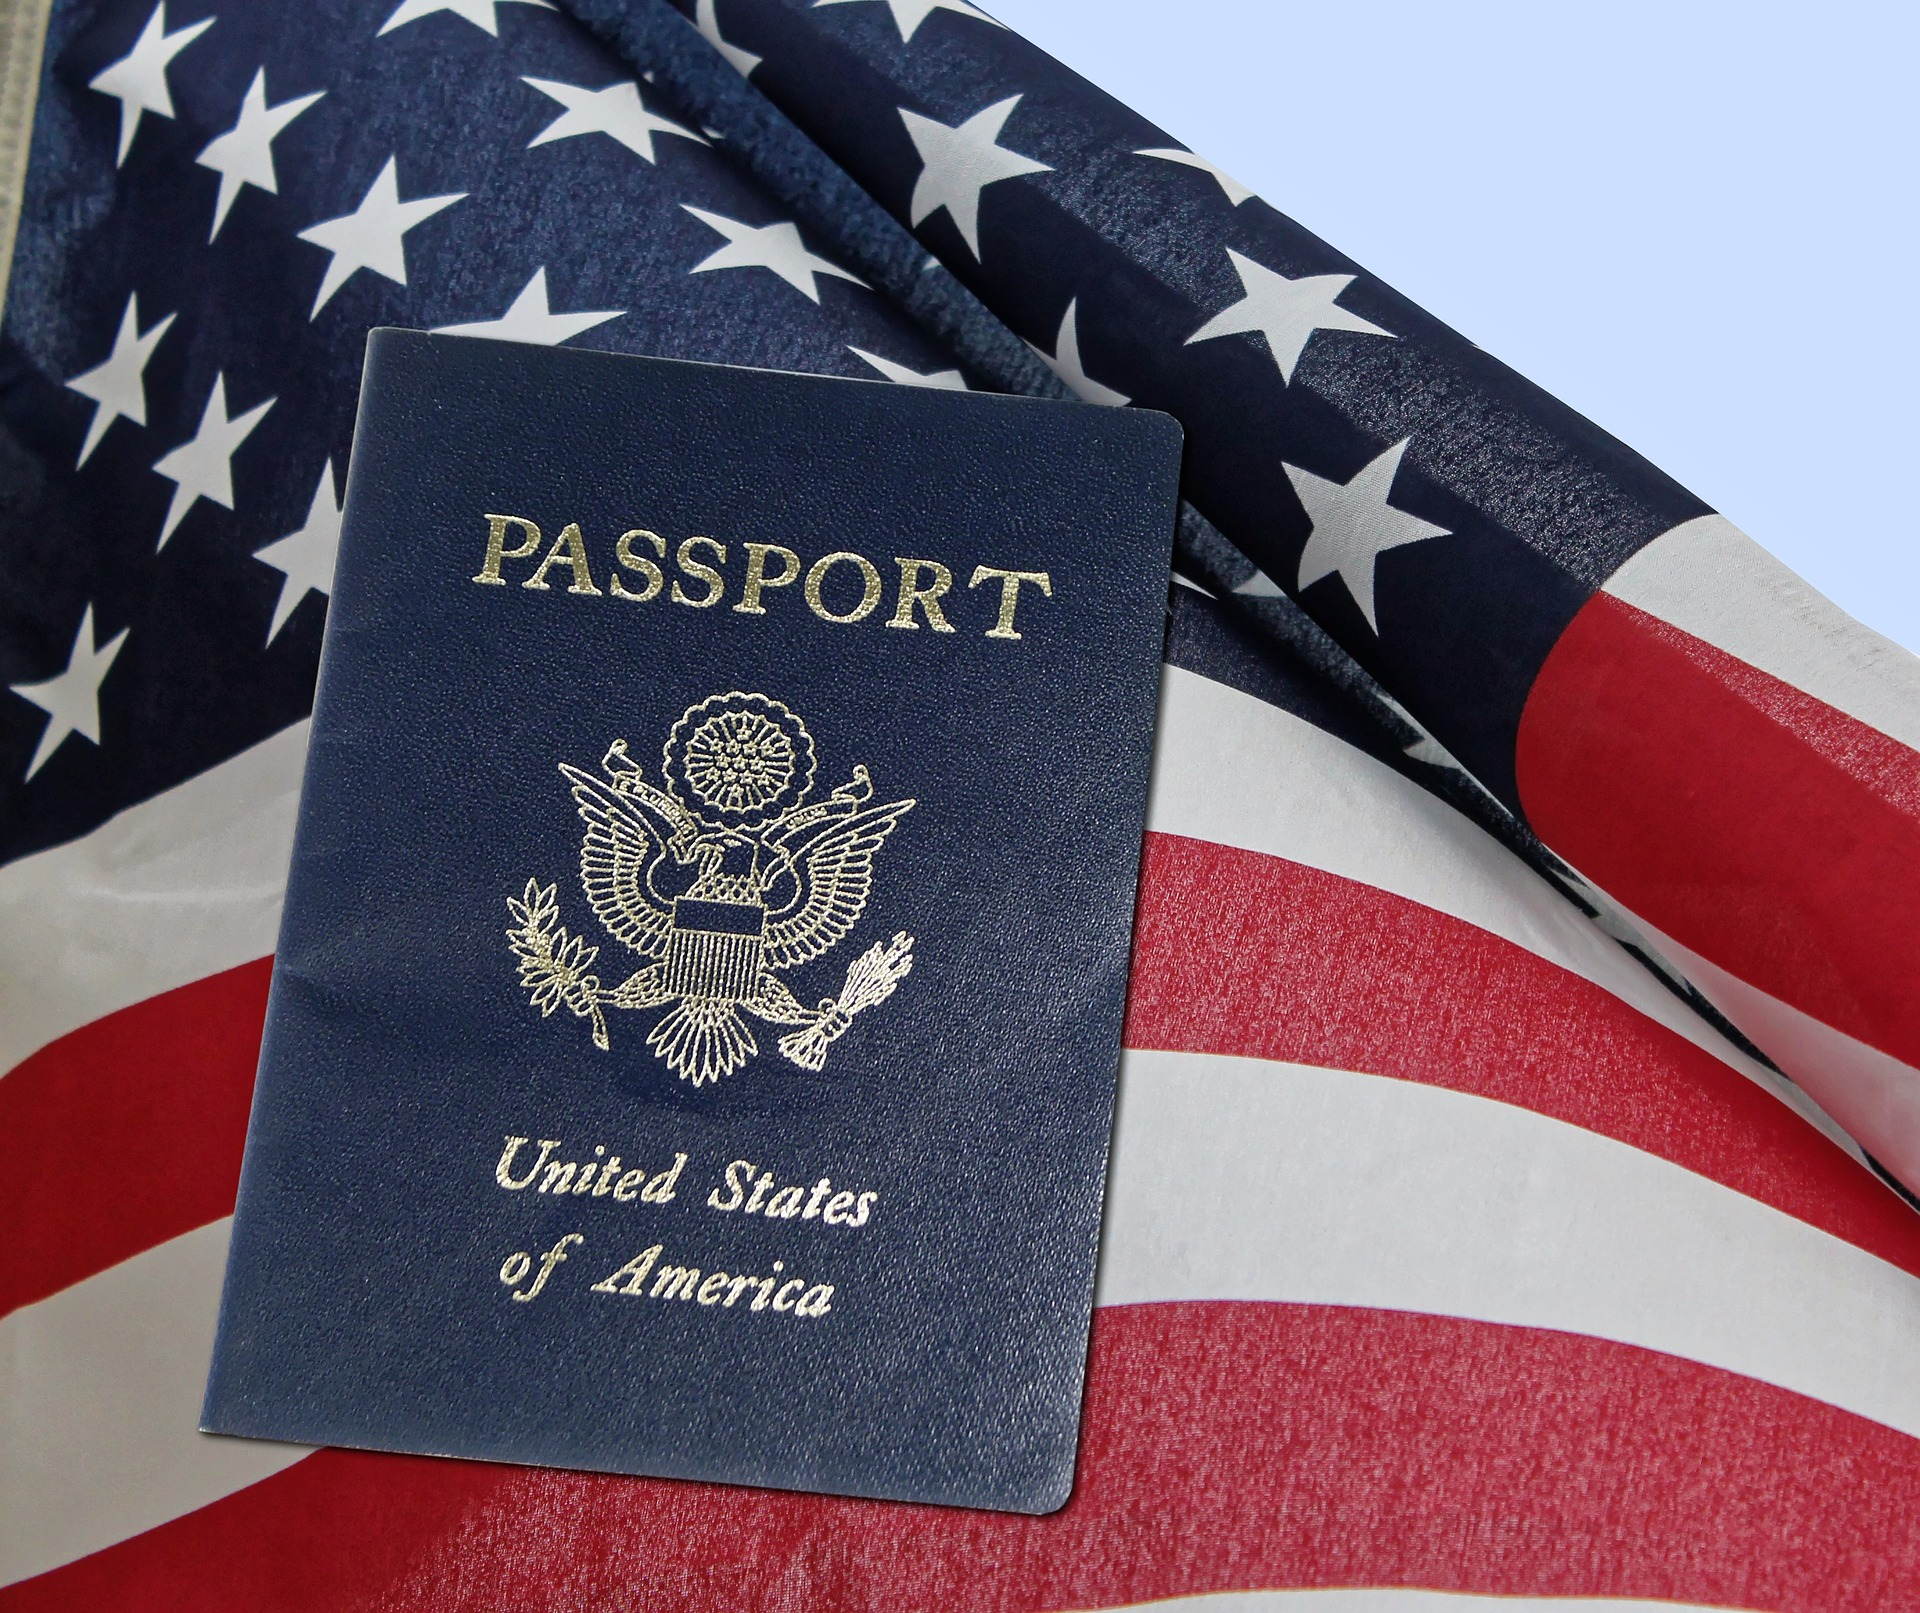 Passports: How to Renew/Apply or get an Emergency Passport